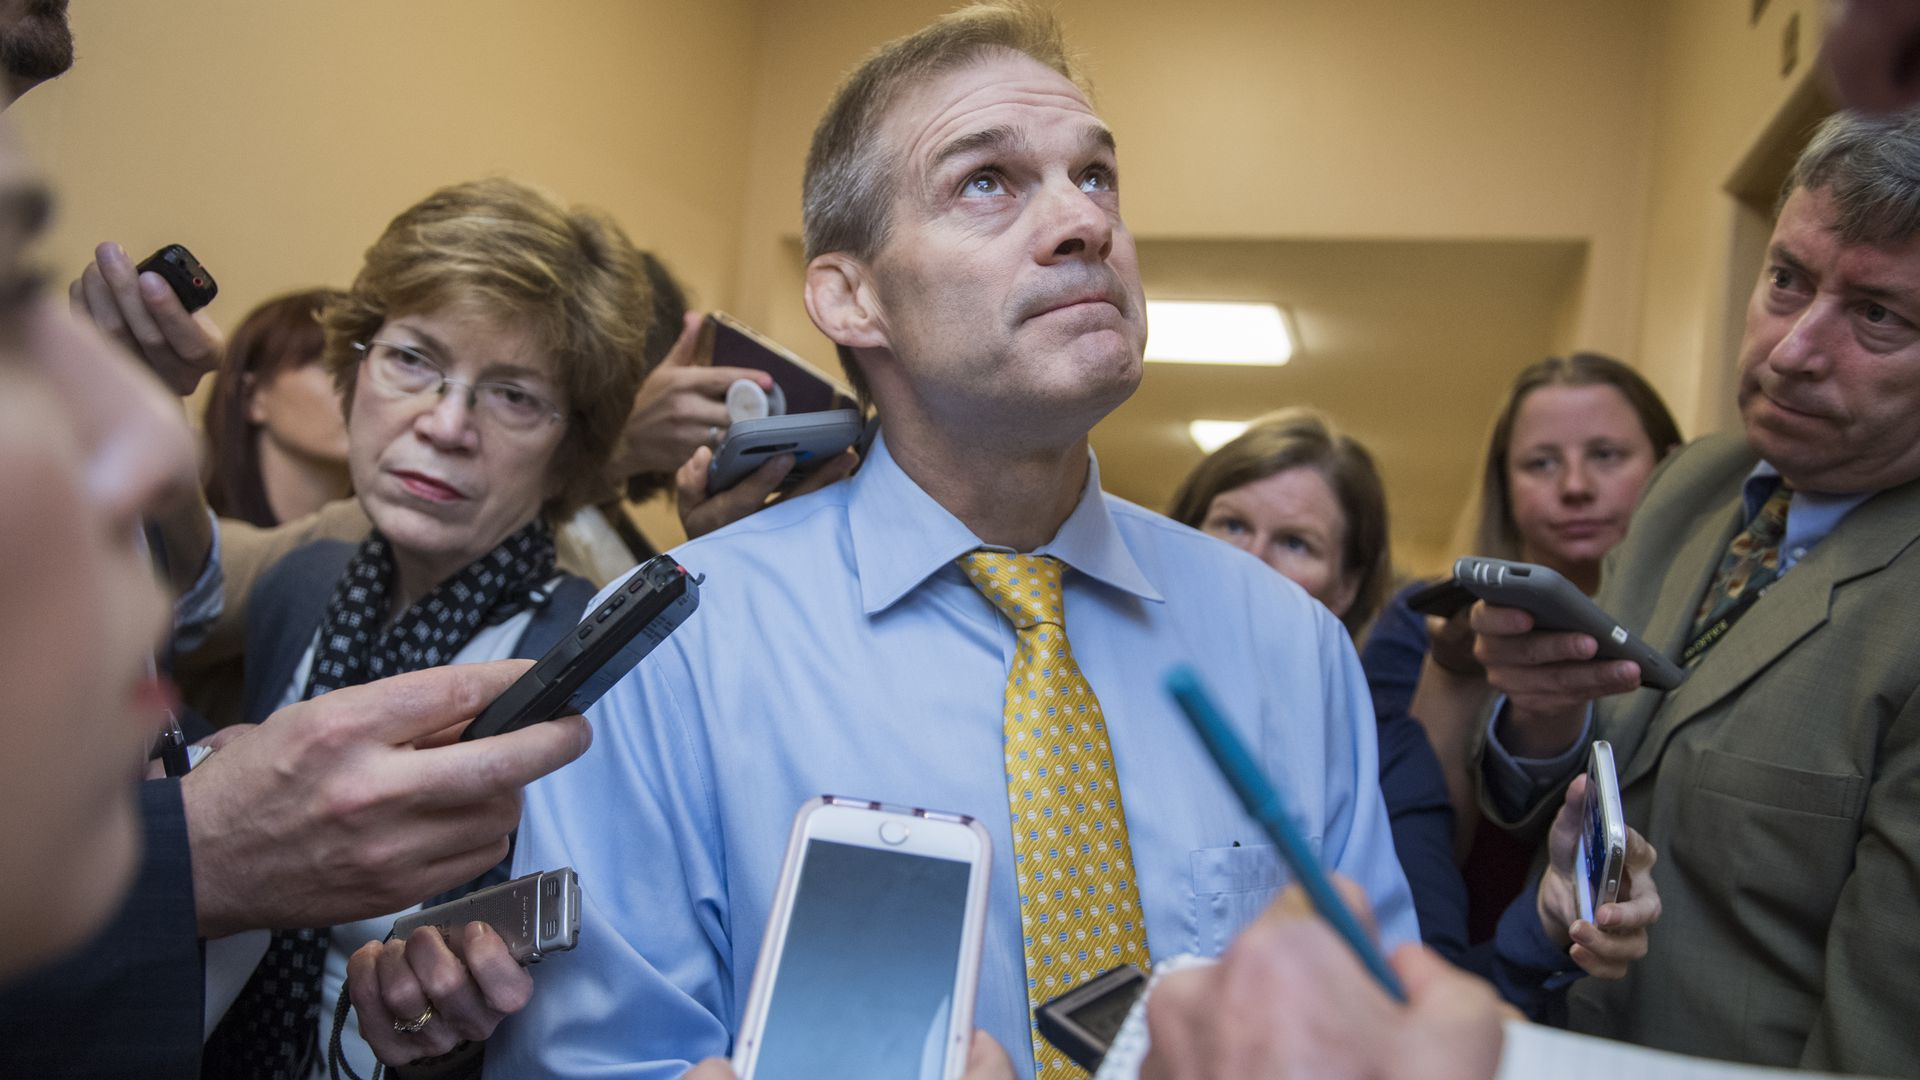 Rep  Jim Jordan accused of ignoring sexual abuse claims at Ohio